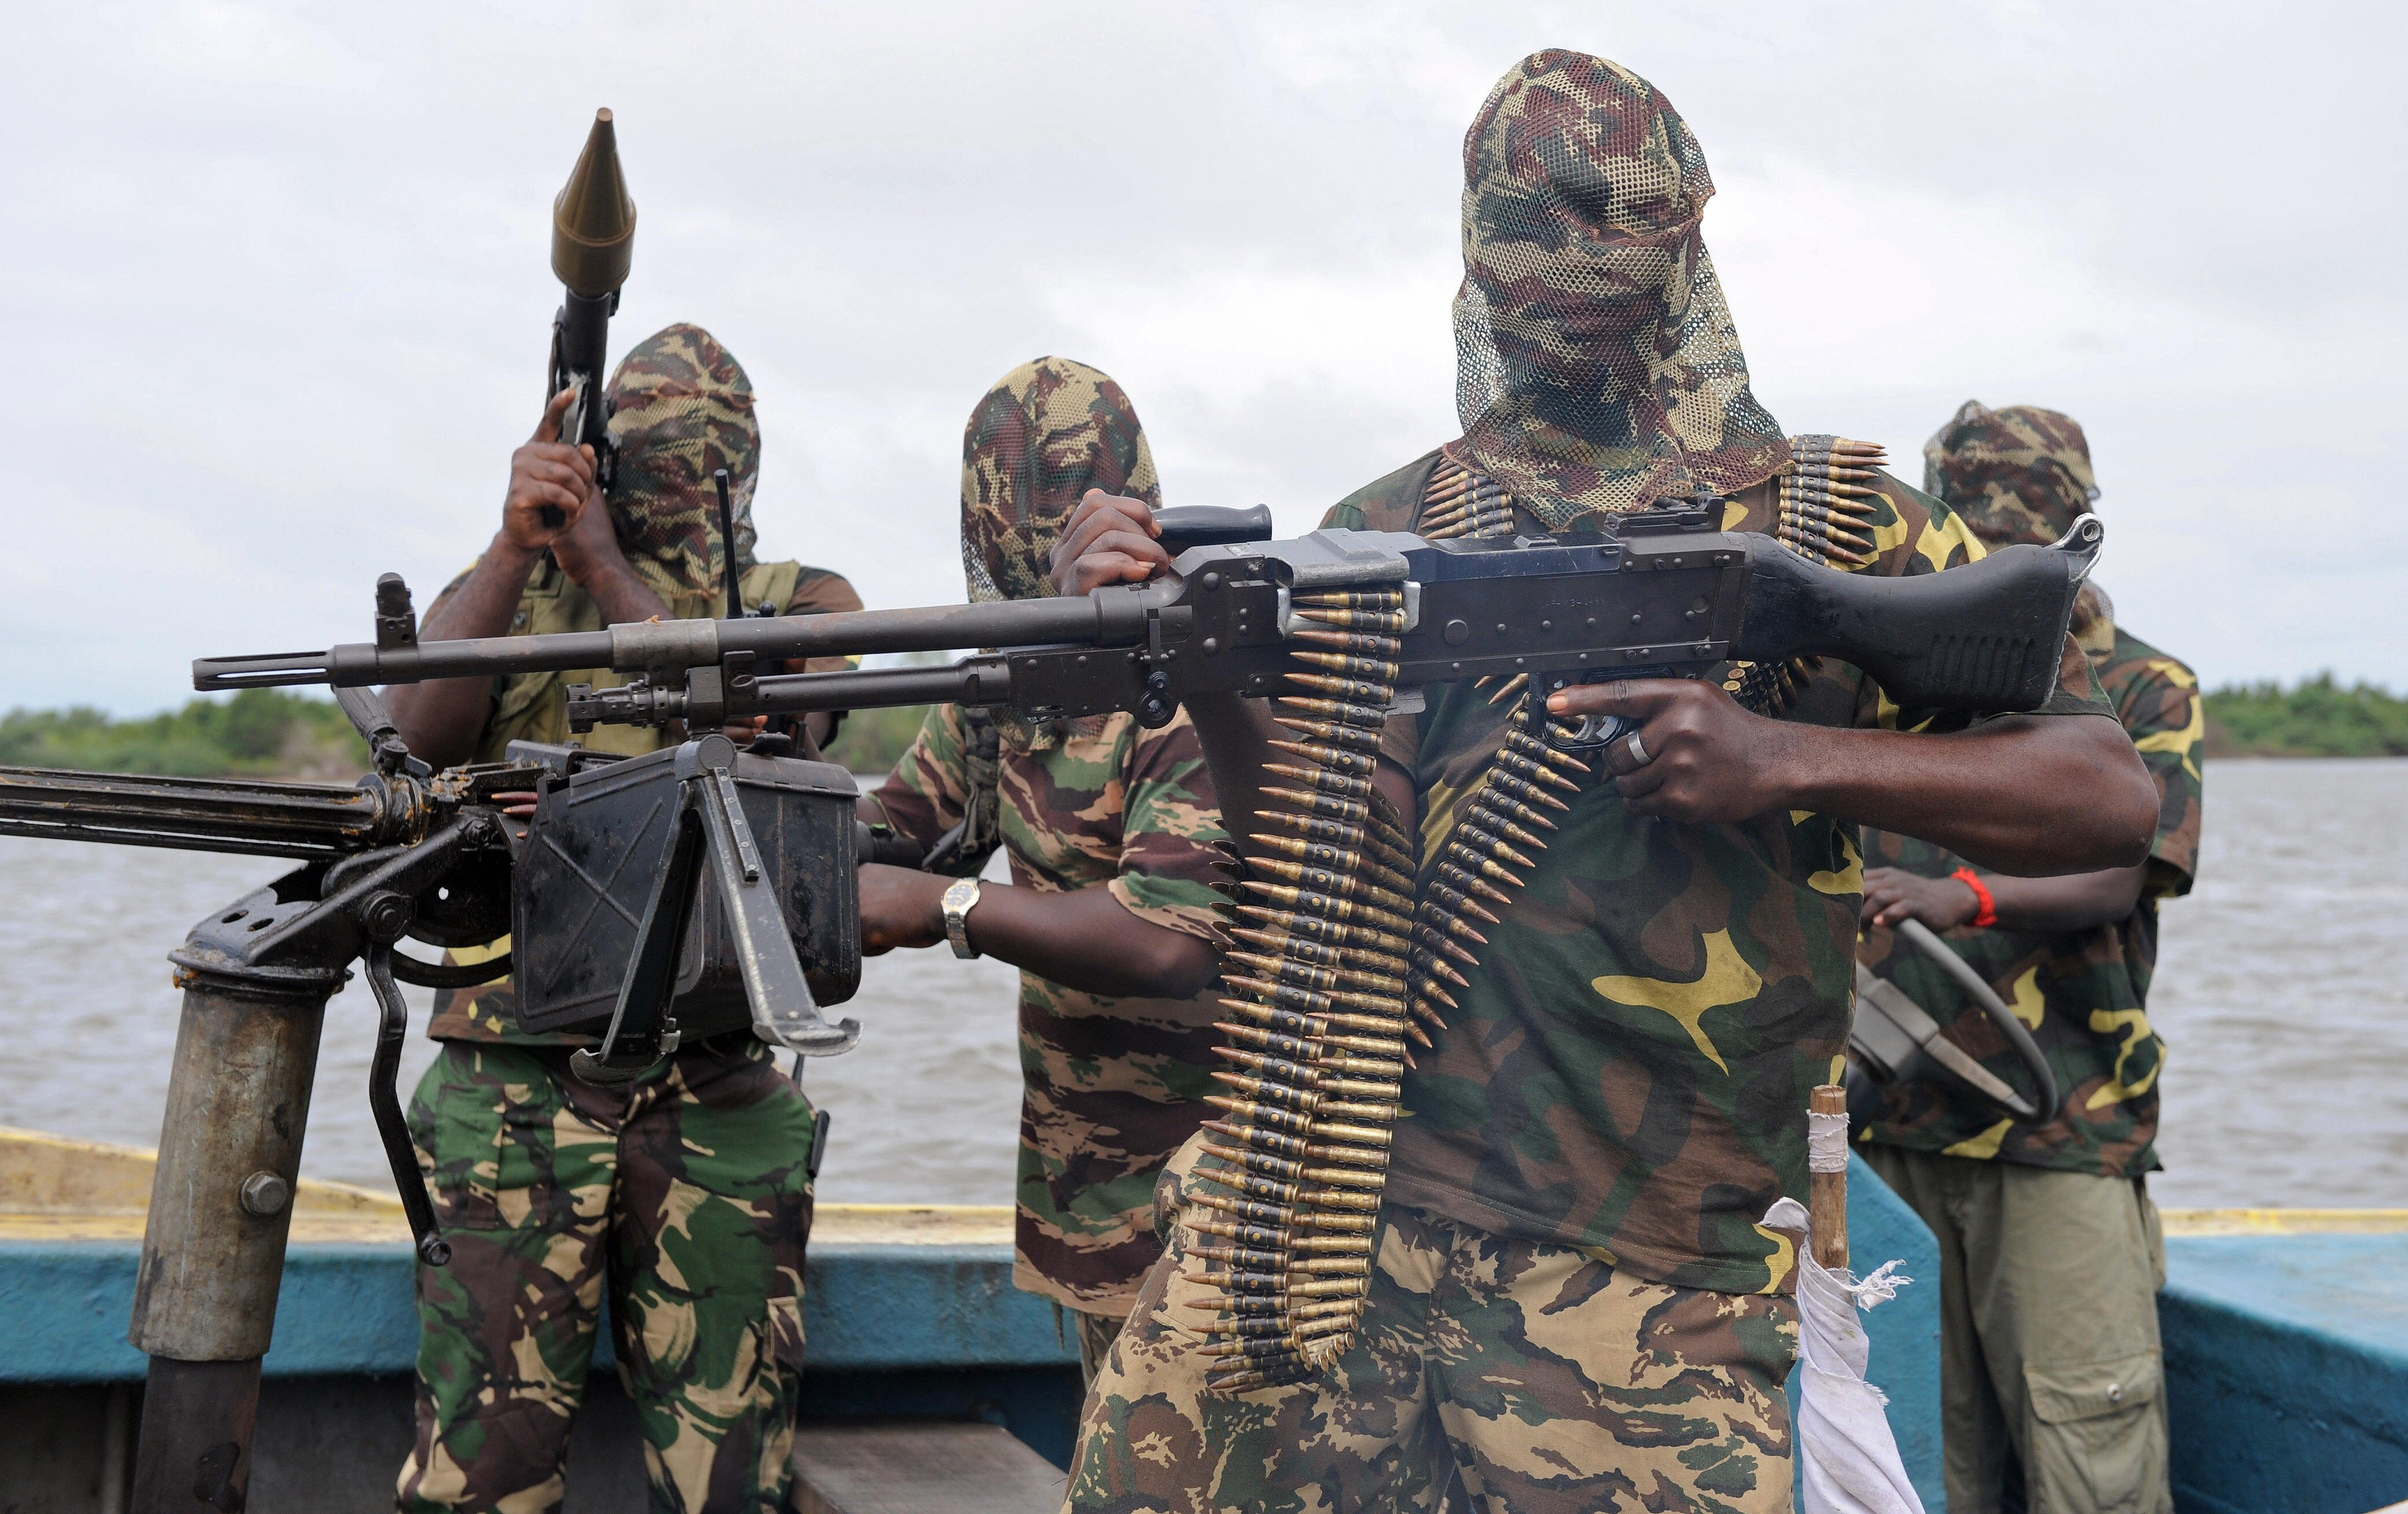 The Niger Delta Militants have been targeting Western oil interests in Nigeria, drawing the ire of US media outlets, quick to dismiss their actions as terrorism.